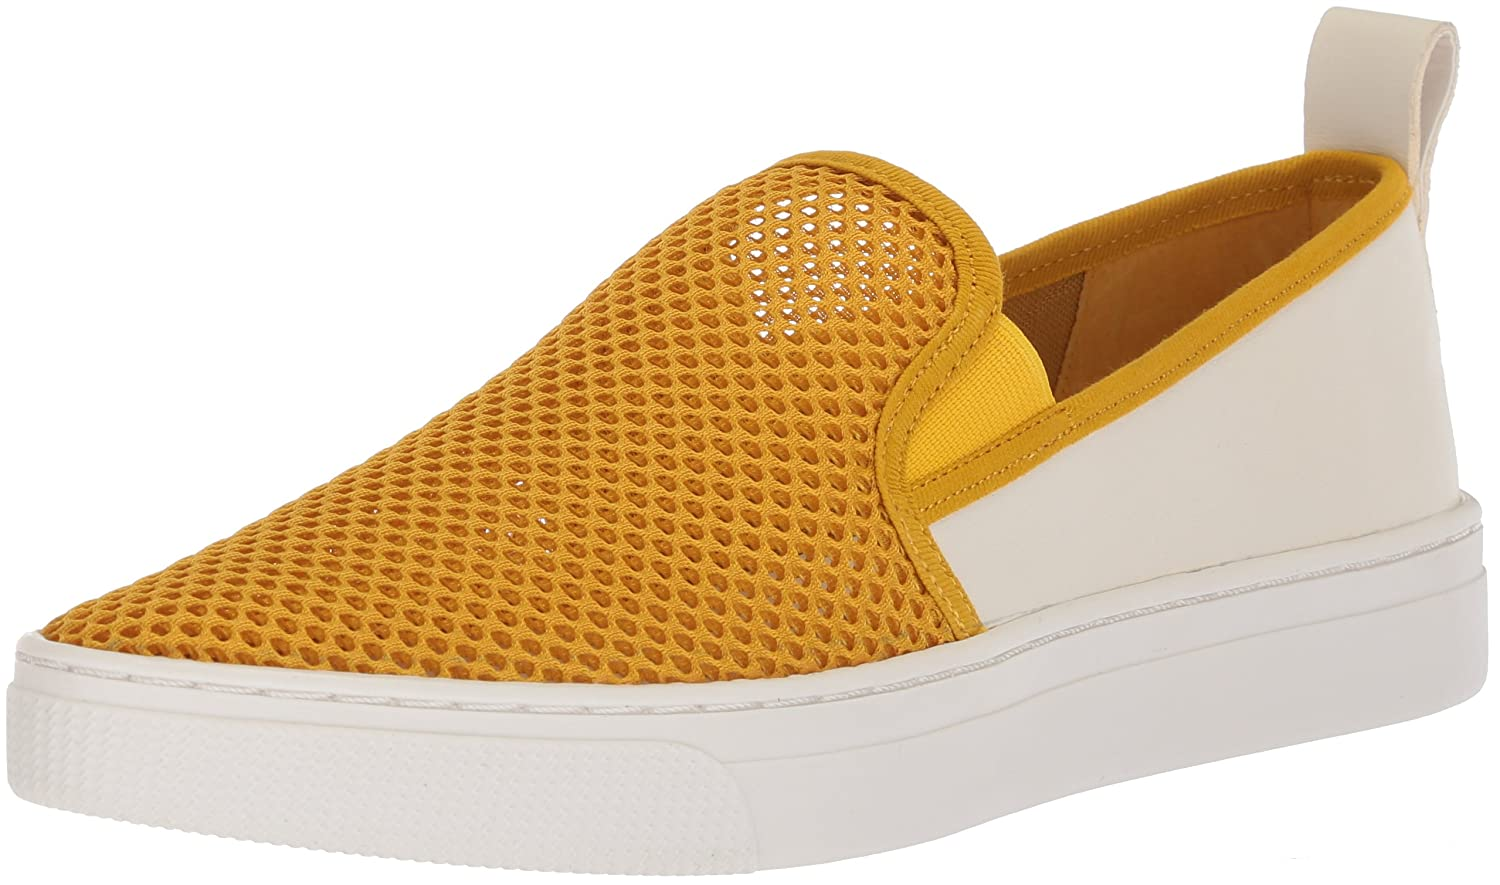 b487d51bdb11 Dolce Vita Women s Geoff Sneaker  Buy Online at Low Prices in India -  Amazon.in